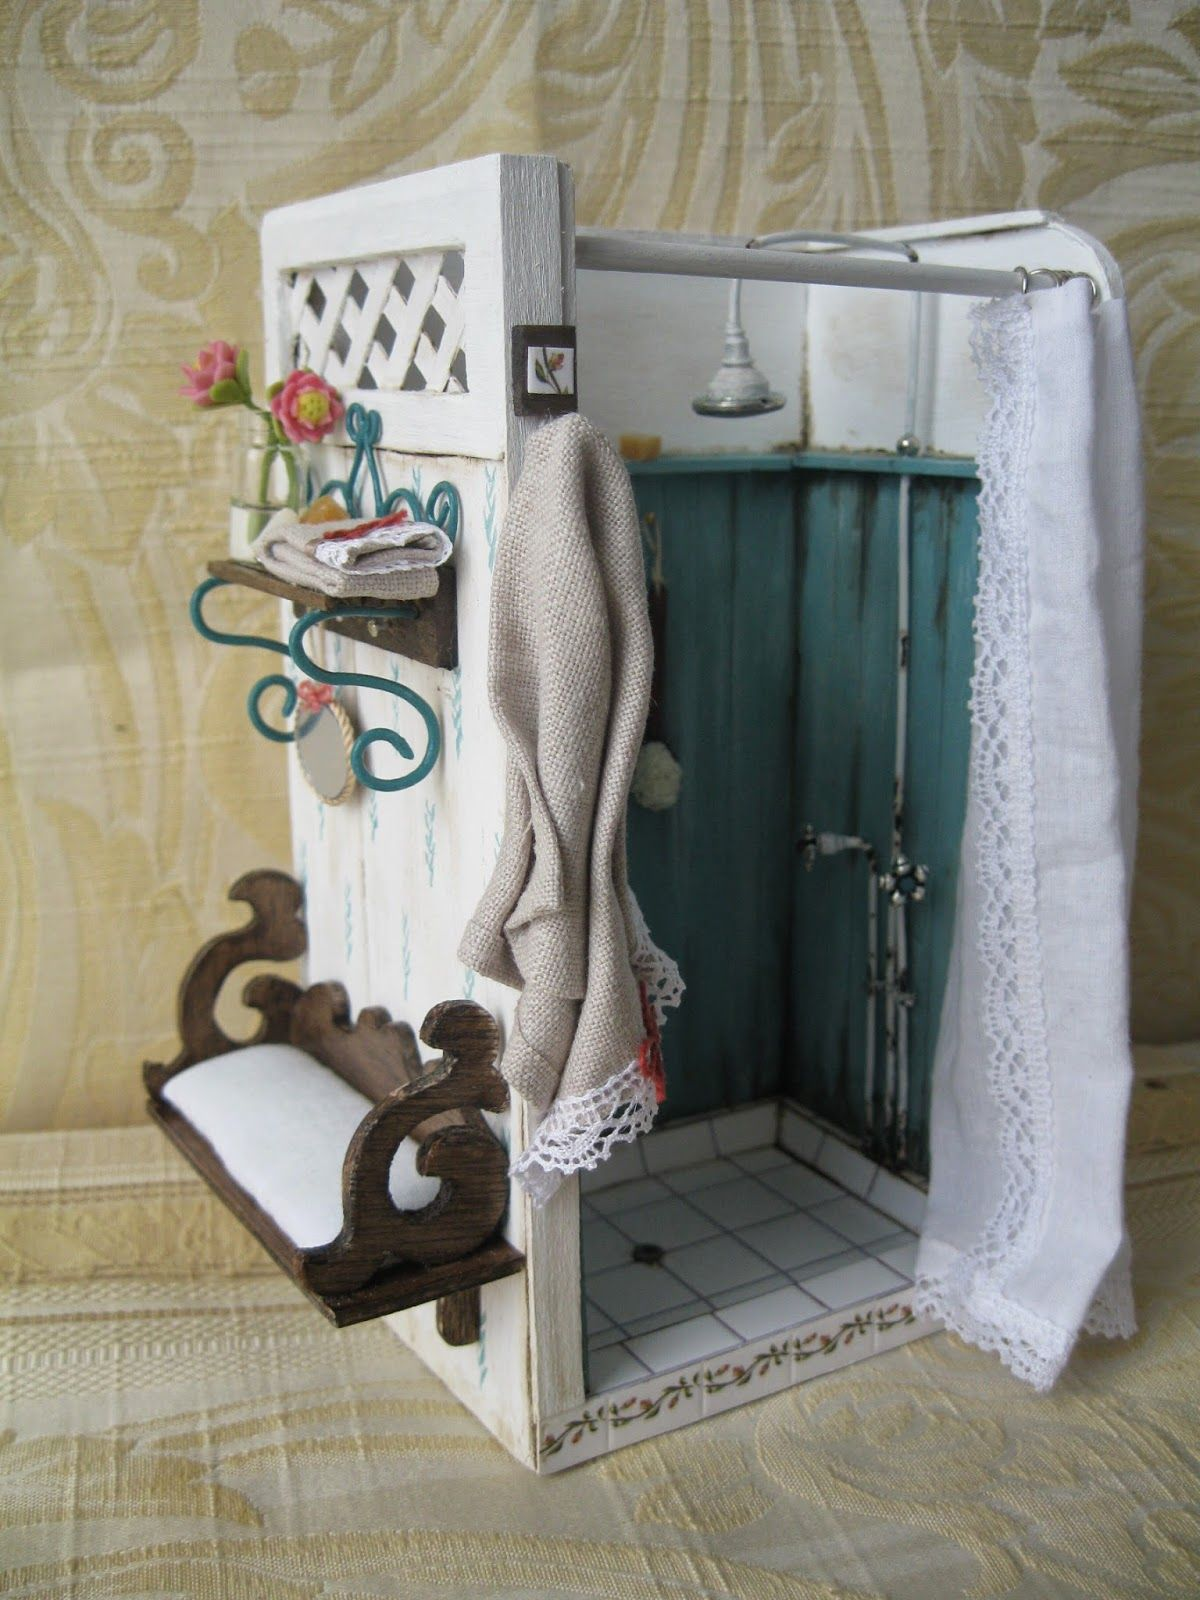 Shower On Miniature For Dollhouses Scale